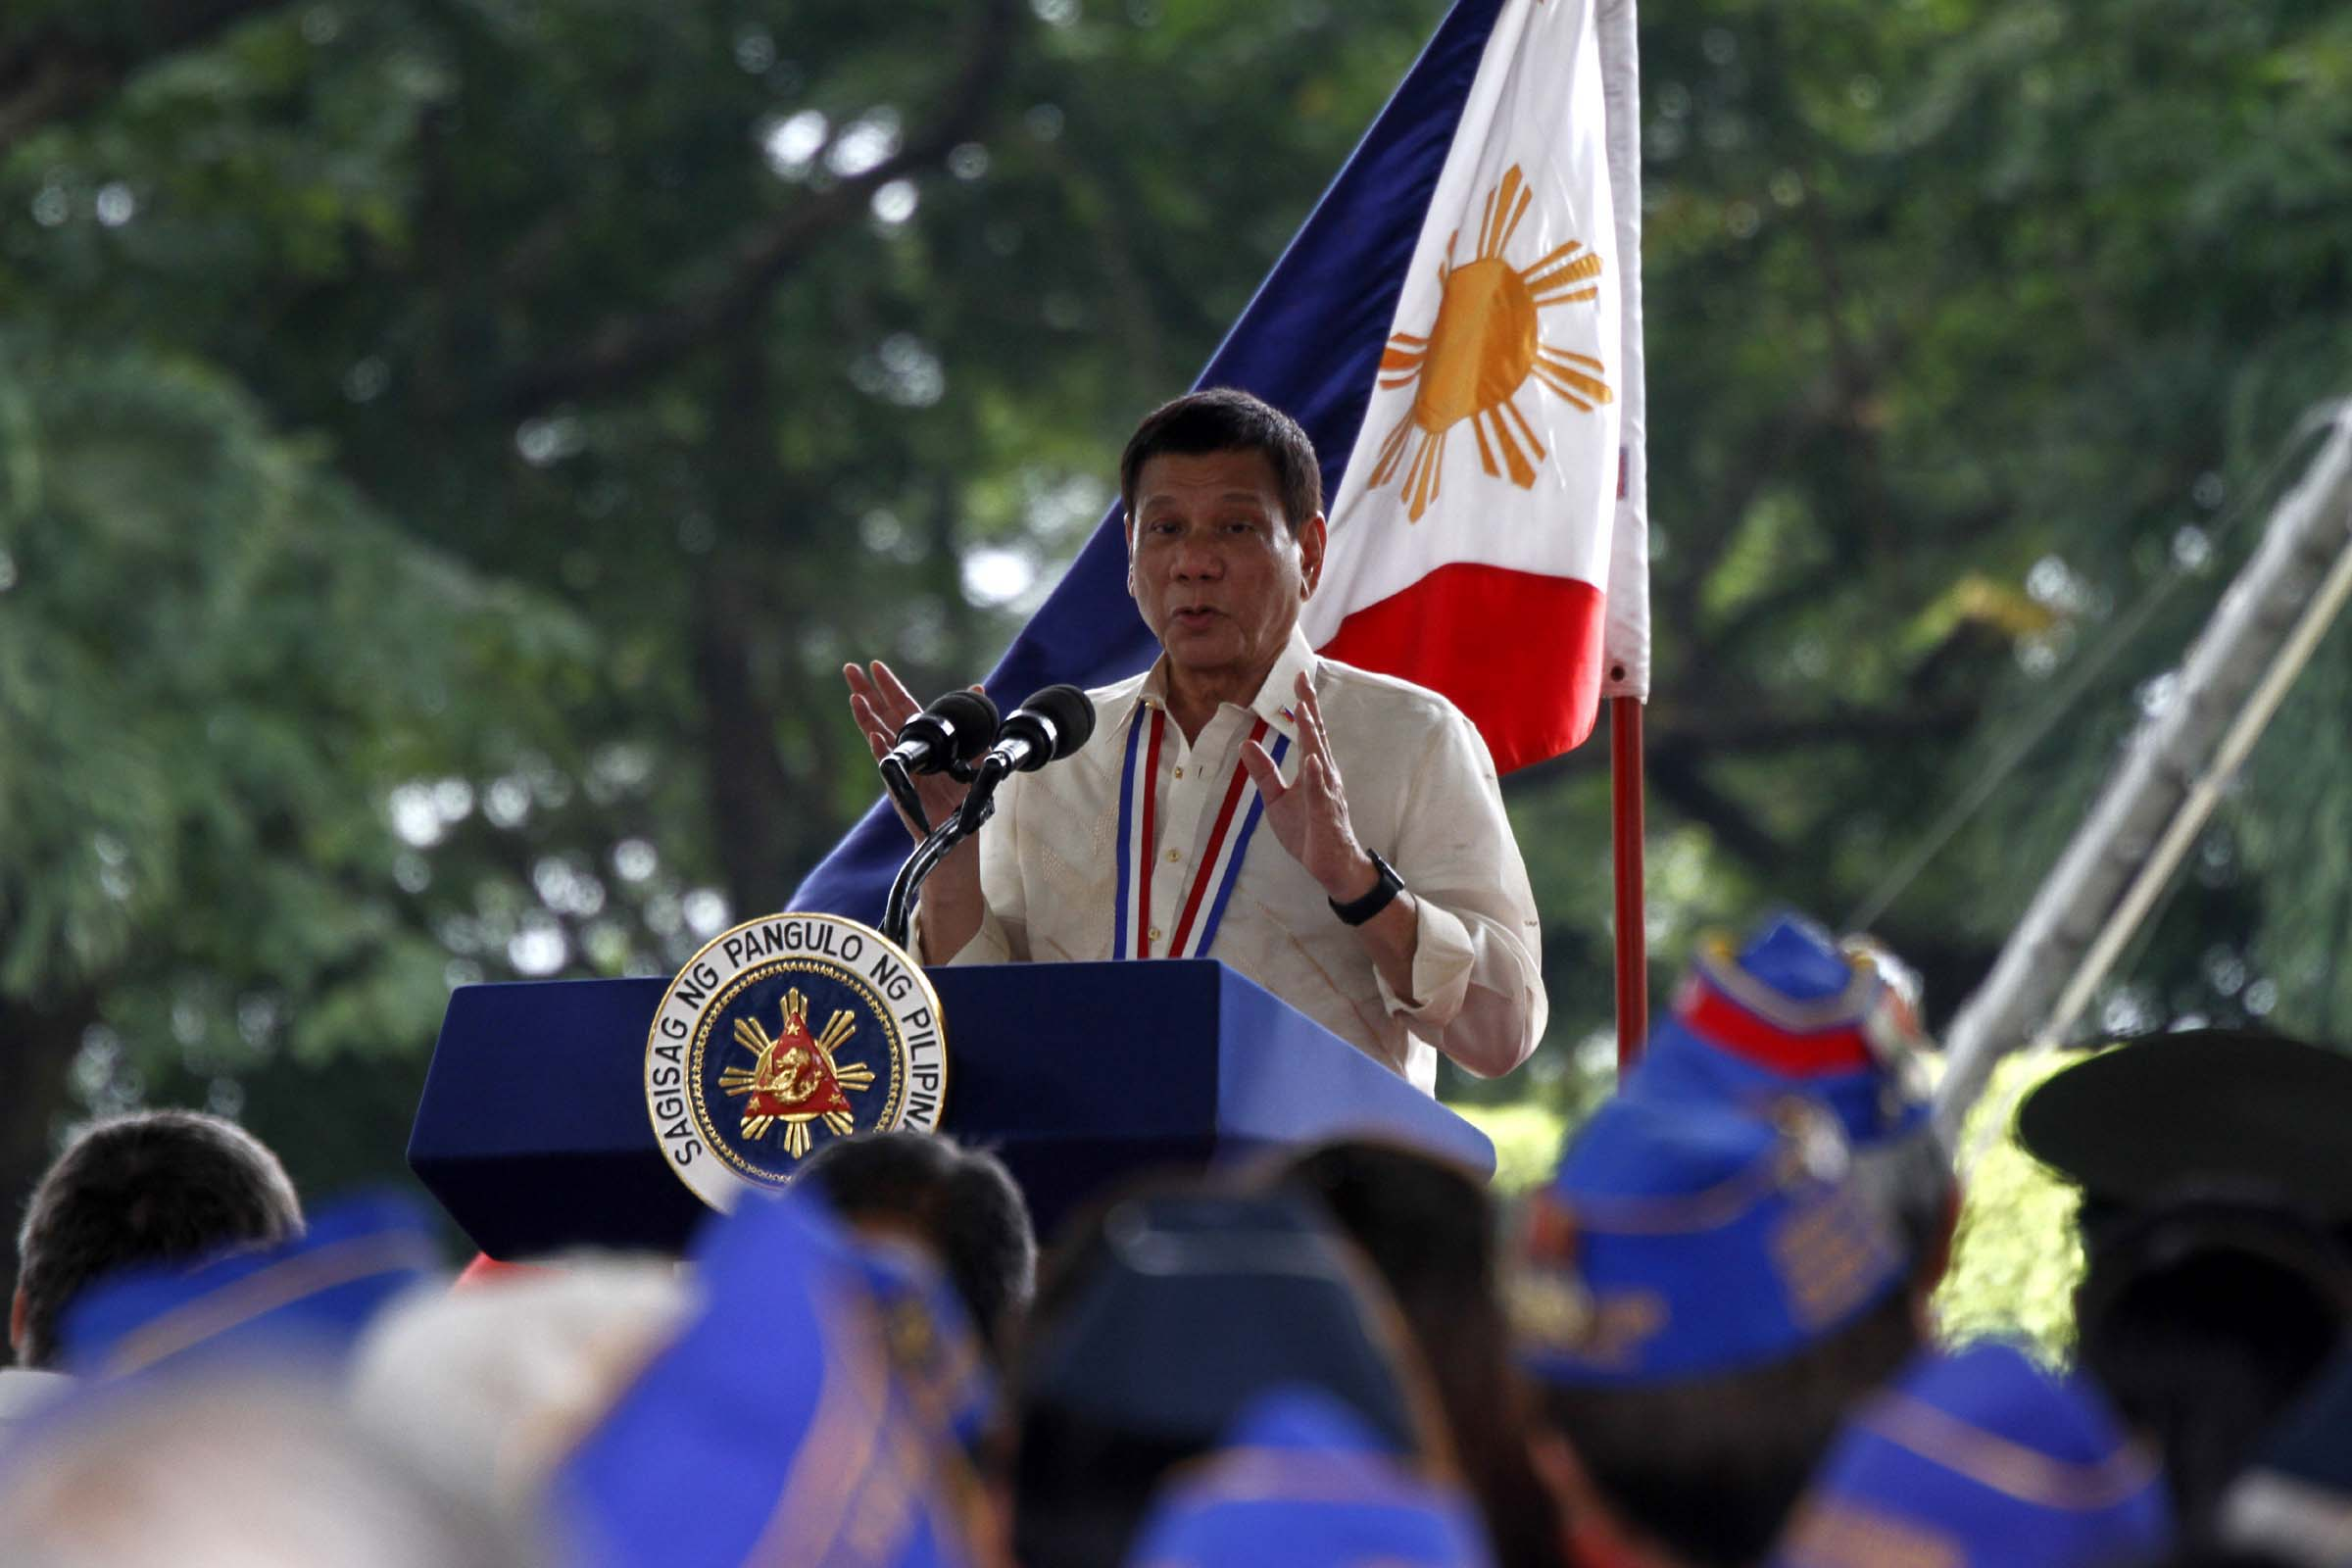 President Rodrigo Duterte disclosed the offer in a speech in which he again lashed out at critics of his crackdown, including President Barack Obama and European countries. (Photo Avito Dalan/PNA)